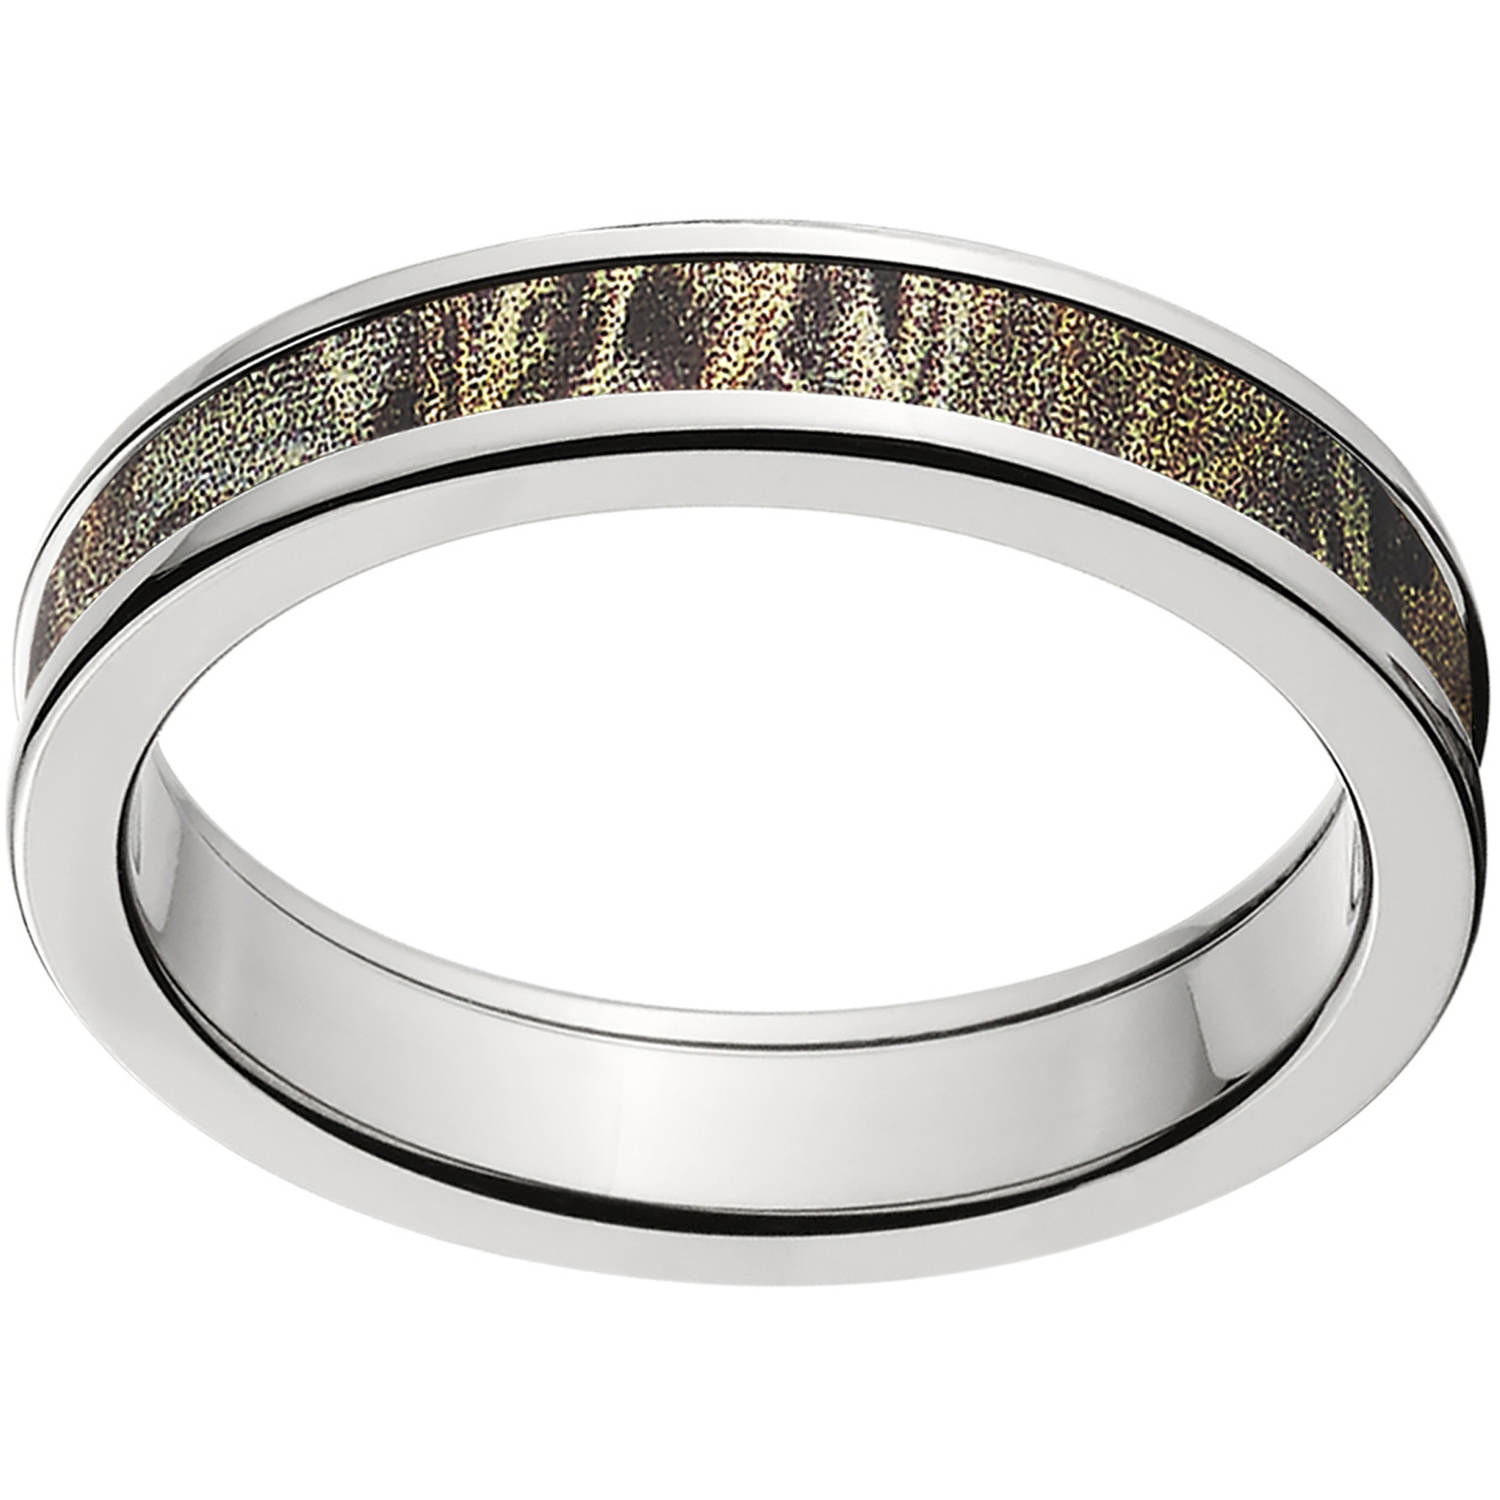 4mm Half-Round Titanium Ring with a RealTree Max 4 Camo Inlay